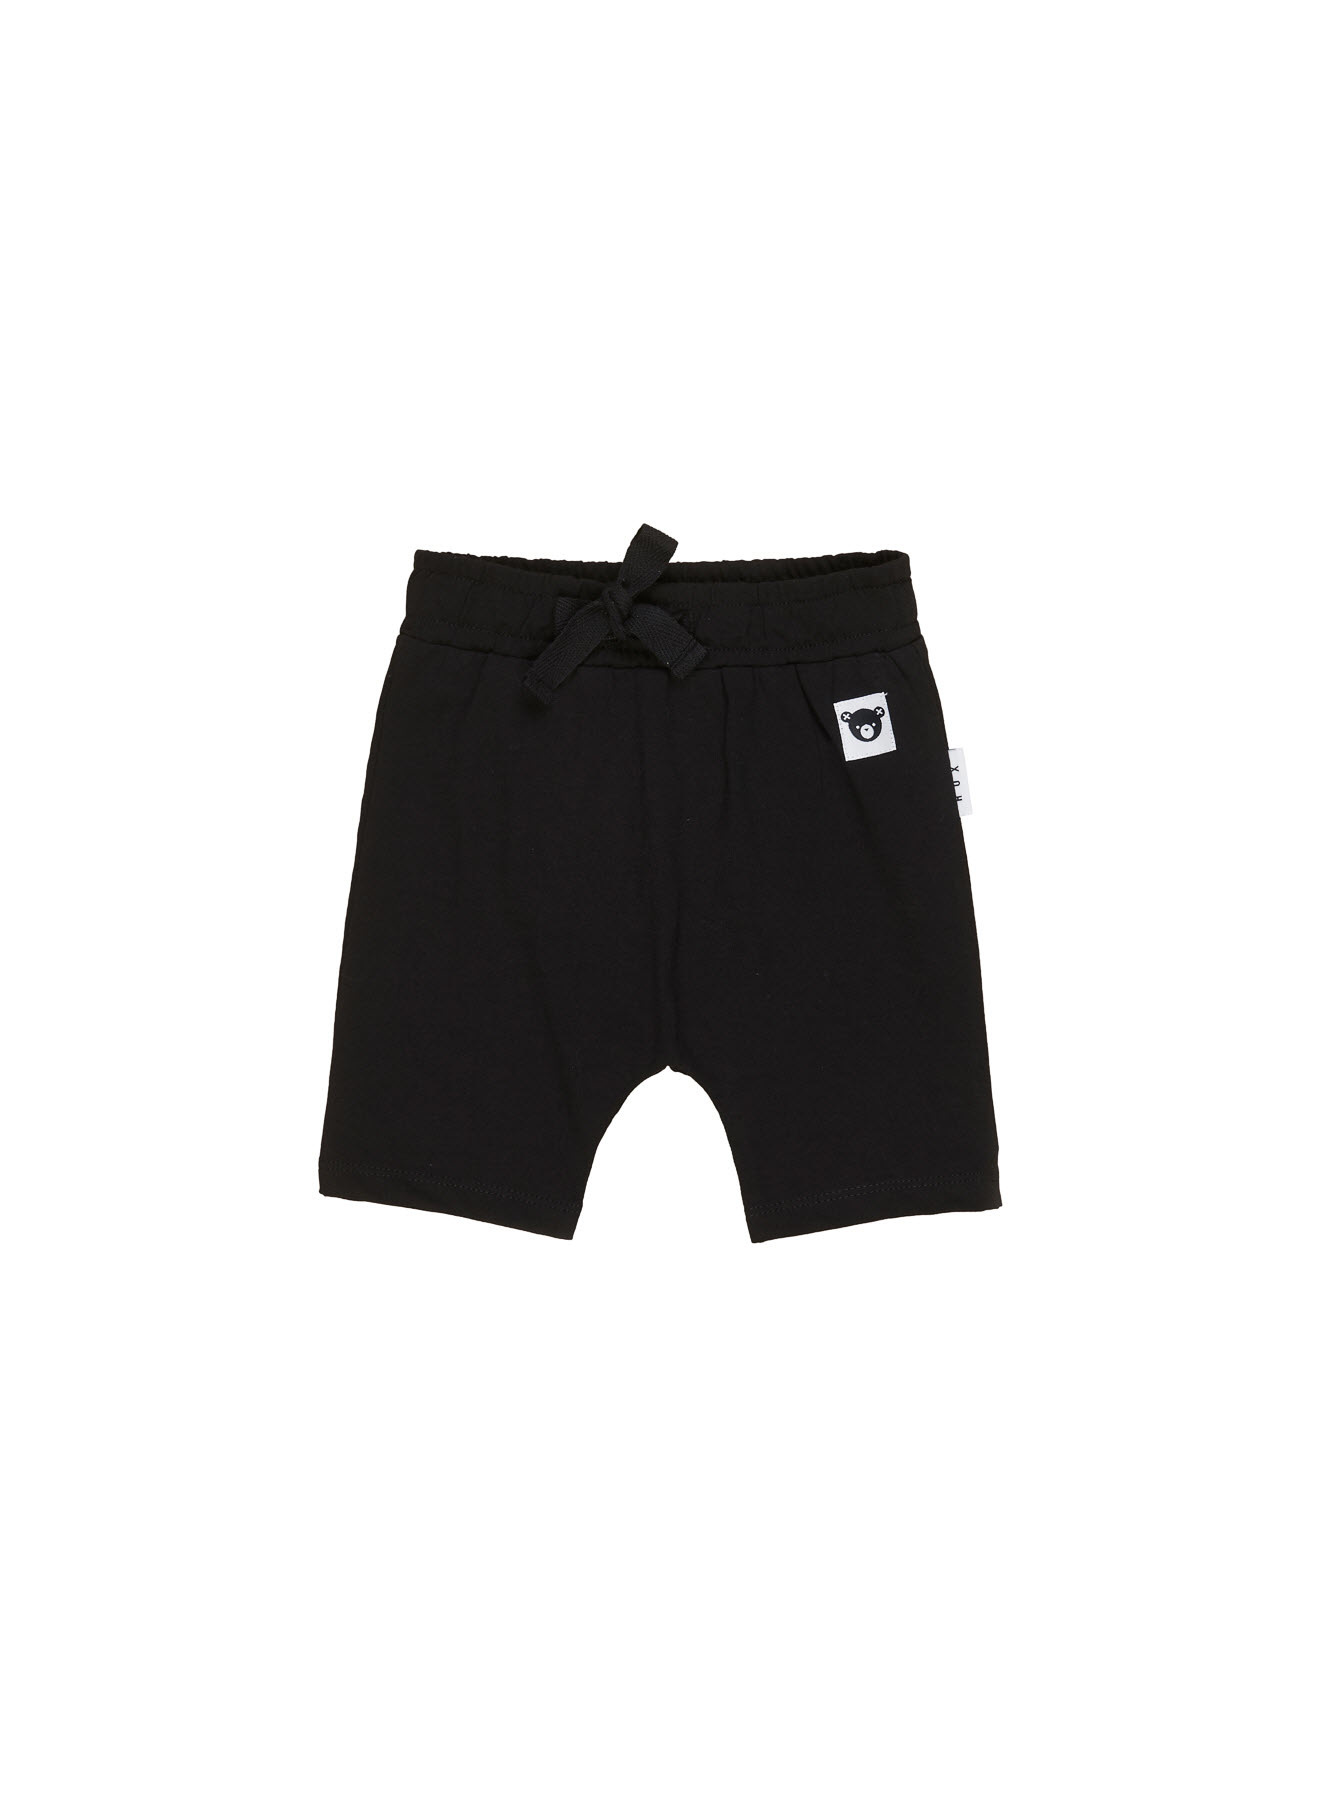 HUX BABY Black Shorts